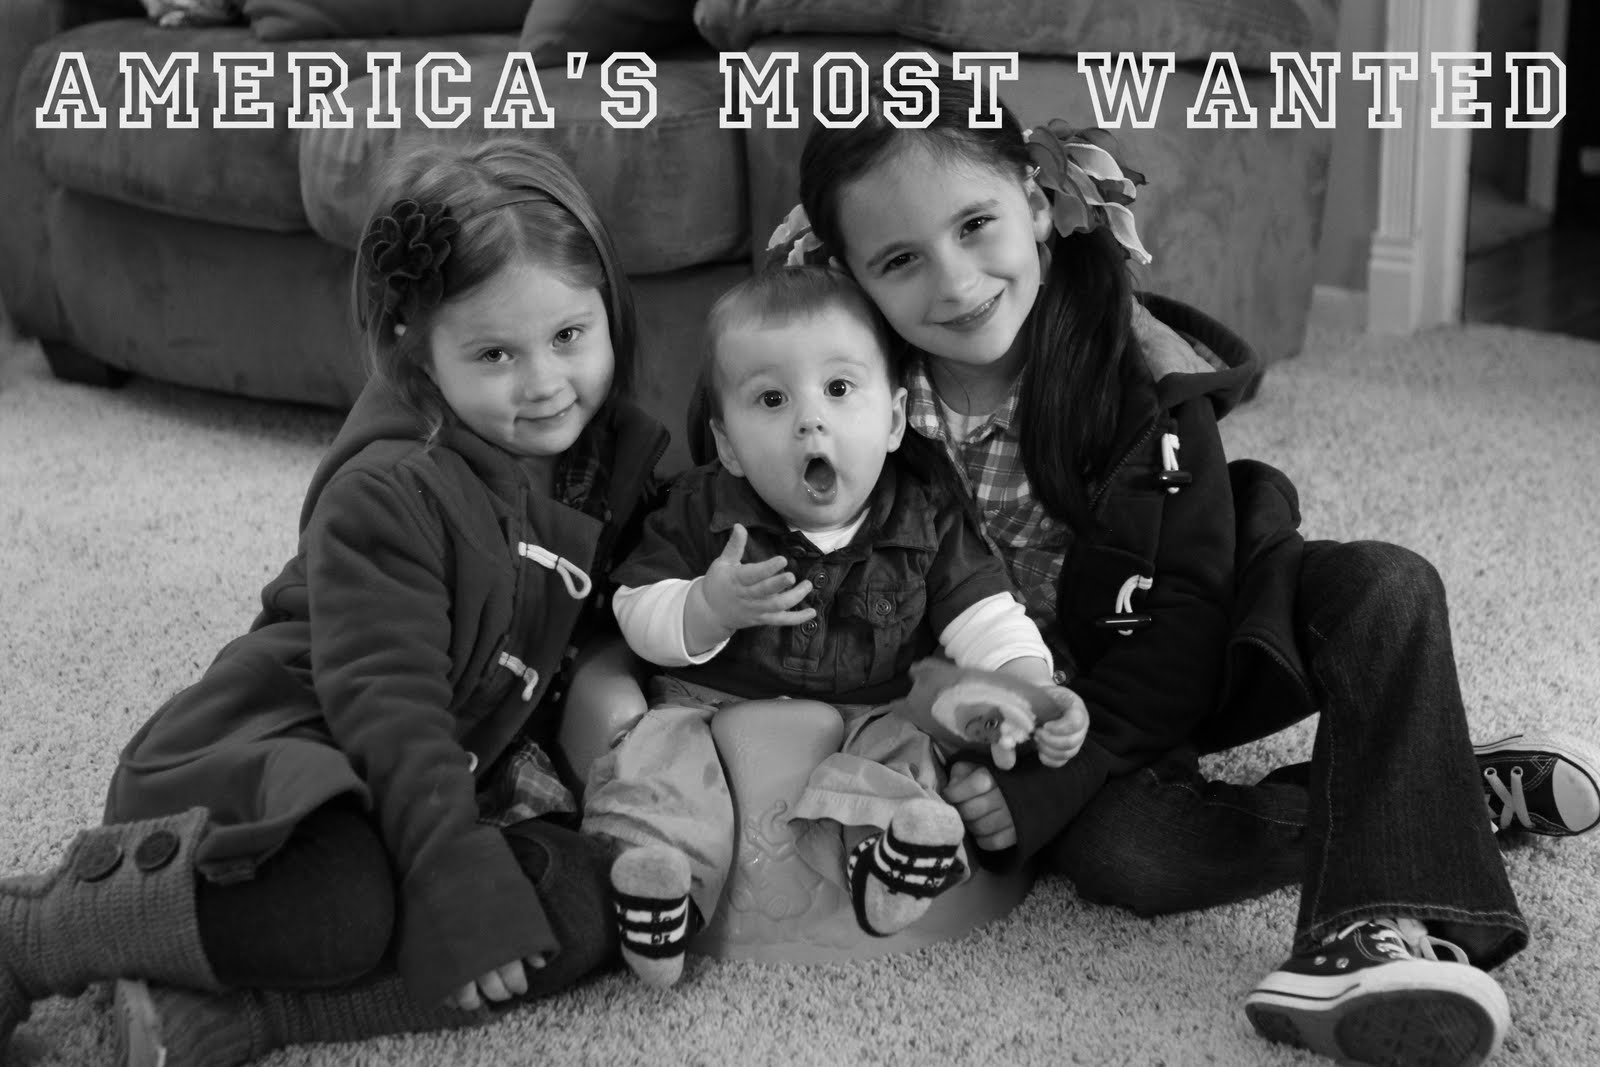 americasmostwanted I think most women would agree with me here even though I might sound like a ...